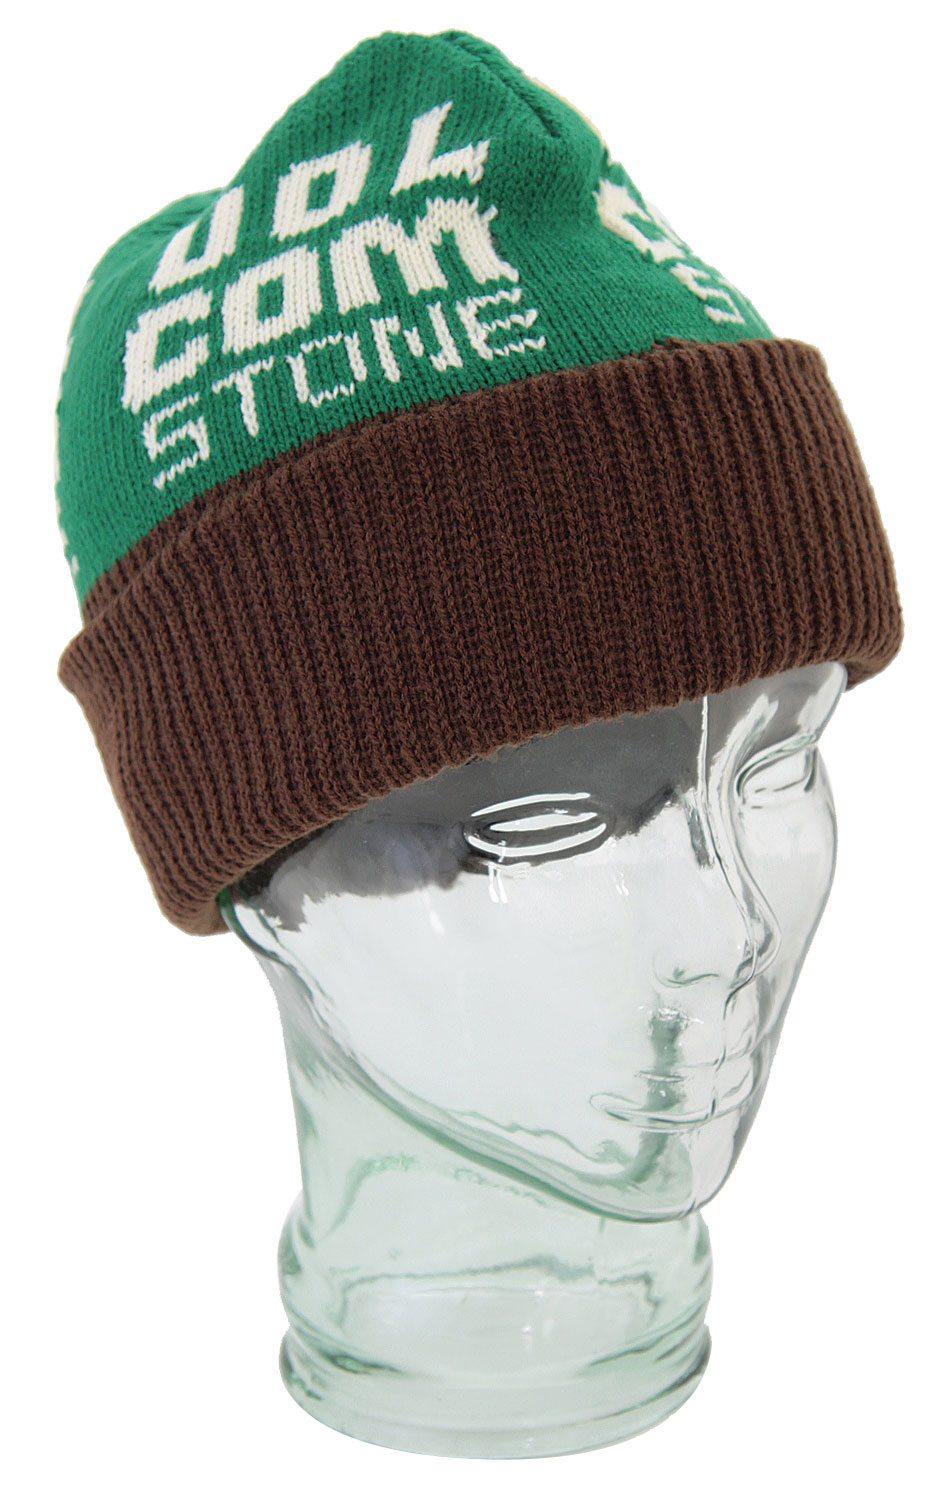 Surf Even if its hitting the slopes before winter is over or hanging out with friends the Cat Power Beanie from Volcom is a good choice for any guy. Made of 85% Acrylic and extended length it allows for enough ventilation so that no matter what you are doing you don't get sweaty, the 15% Nylon will insure that it won't look deformed in the near future.Key Features of The Volcom Cat Power Beanie: 85% Acrylic / 15% Nylon Extended Length 2-Tone Rib Knit Beanie with Jacquard One Size Fits All - $17.95